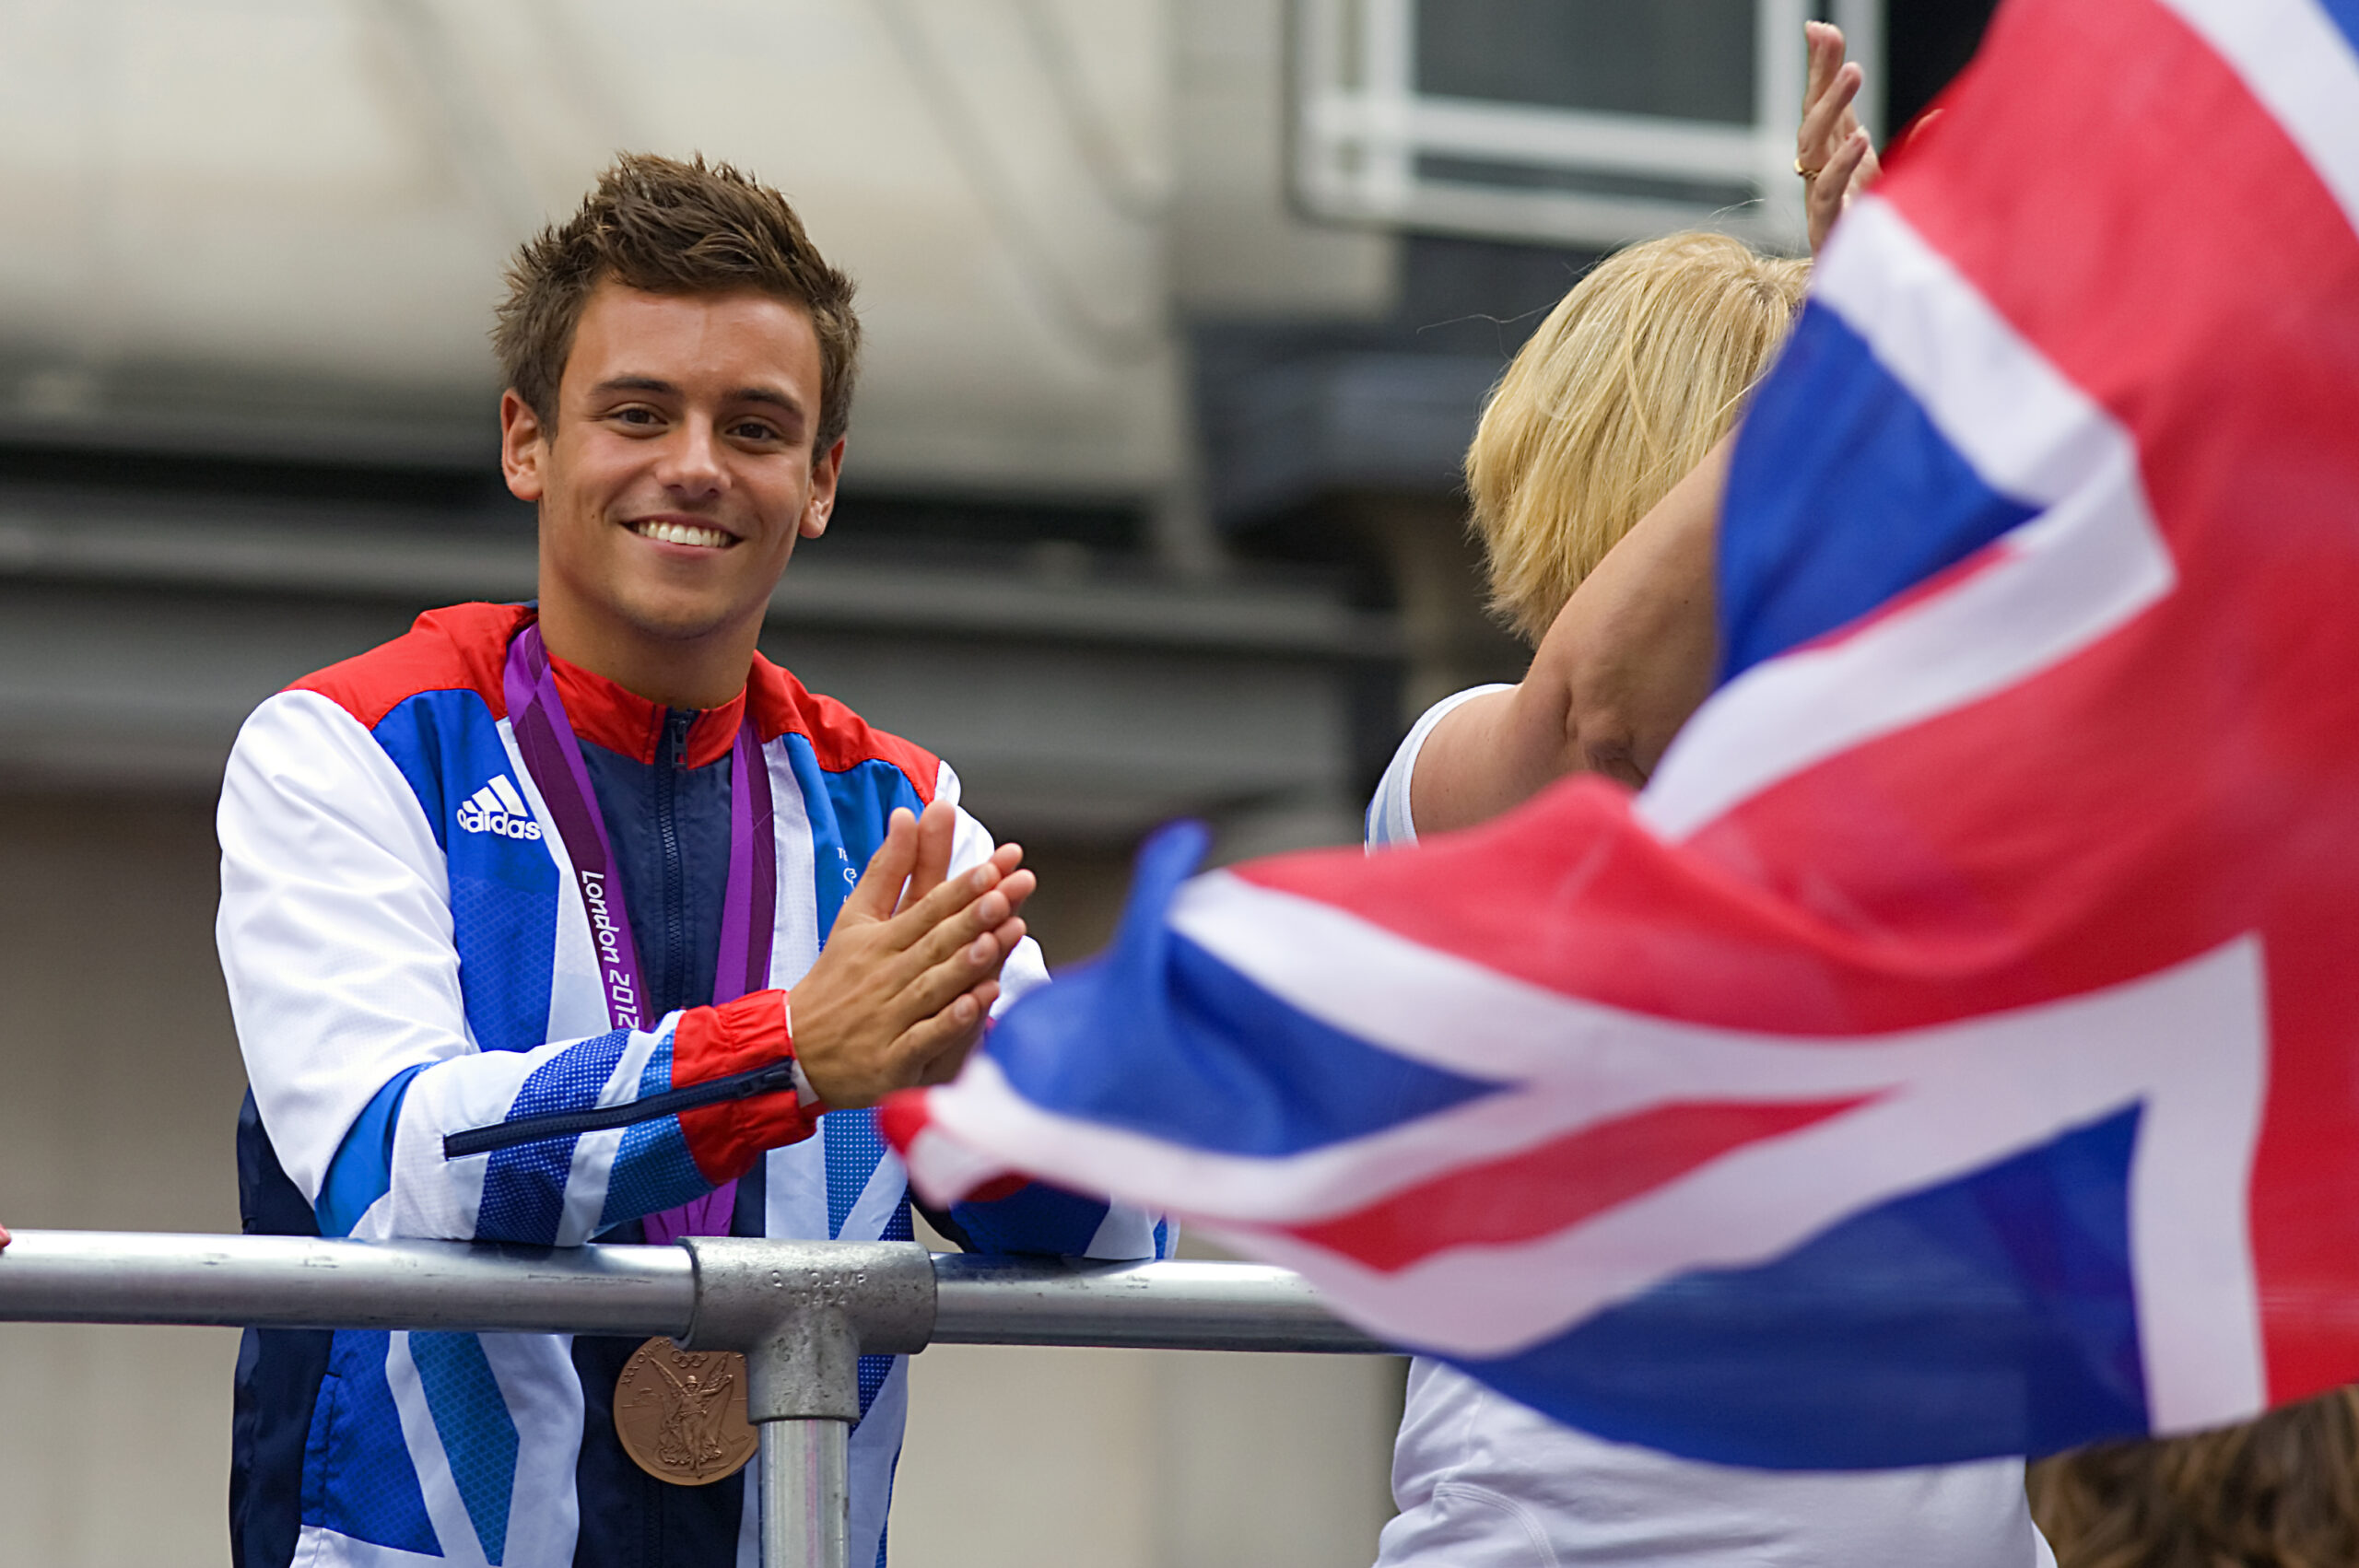 """Tom Daley says it's his """"mission"""" to ban countries that execute LGBTQ people from Olympics"""